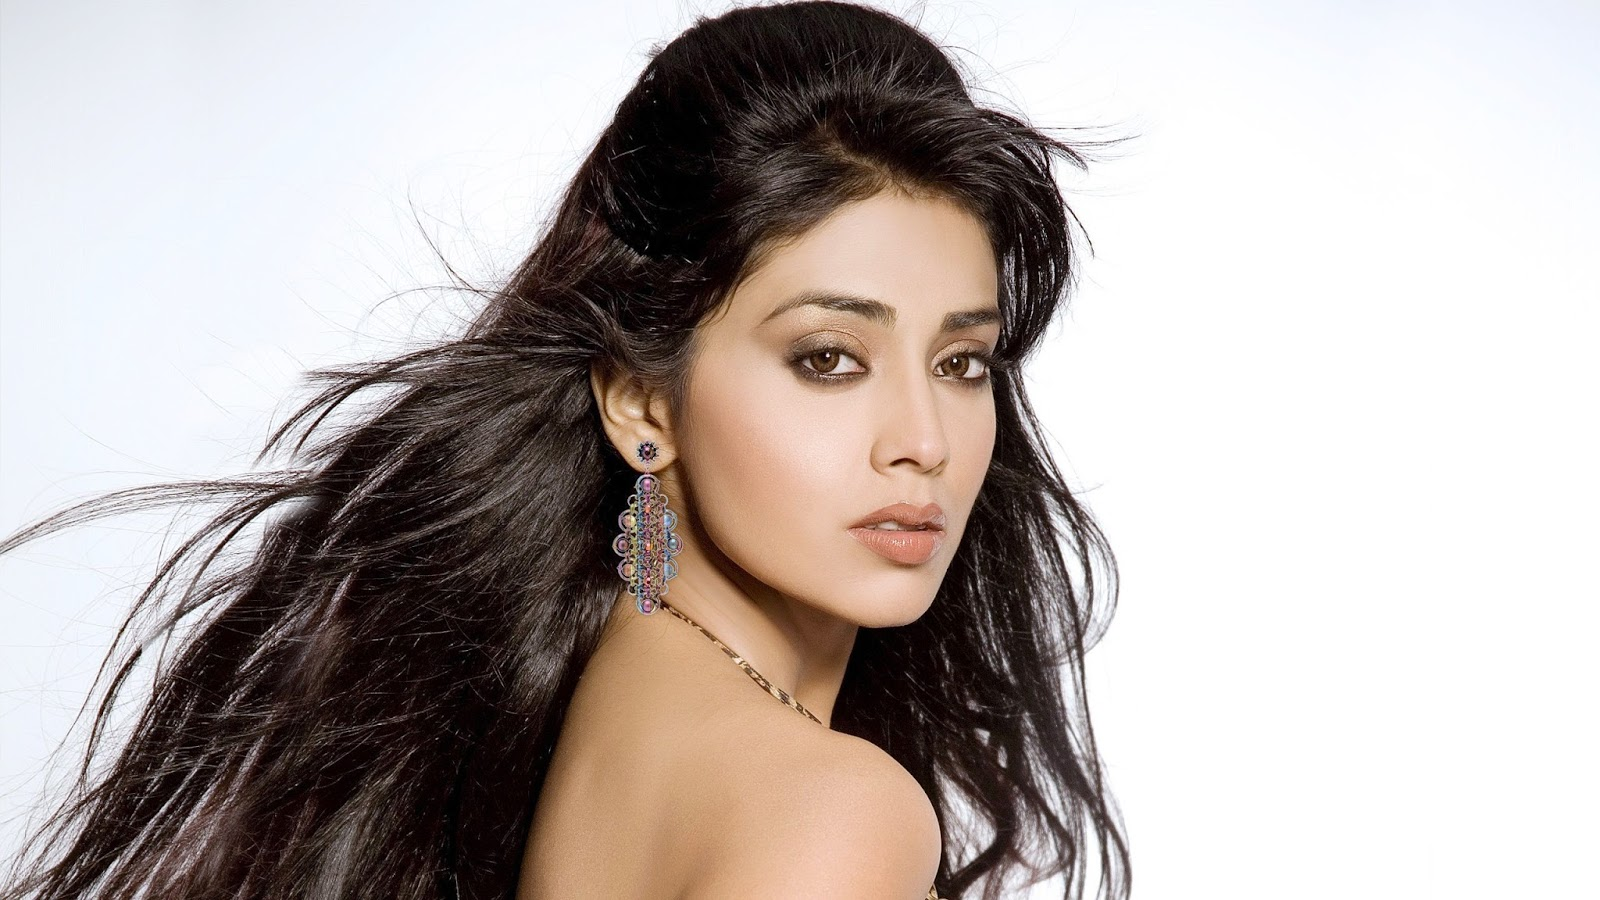 shriya saran 26 best hd photos download - indian celebrities hd